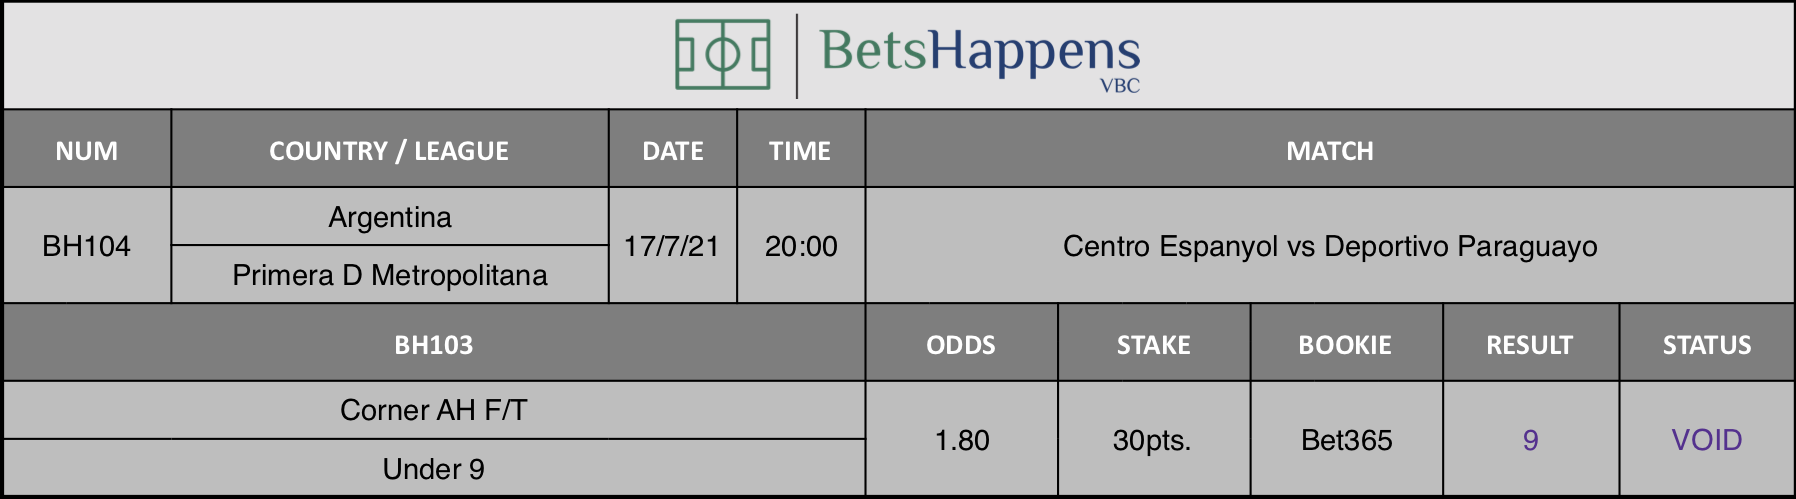 Results of our advice for the Centro Espanyol vs Deportivo Paraguayo match in which Corner AH F/T Under 9 is recommended.